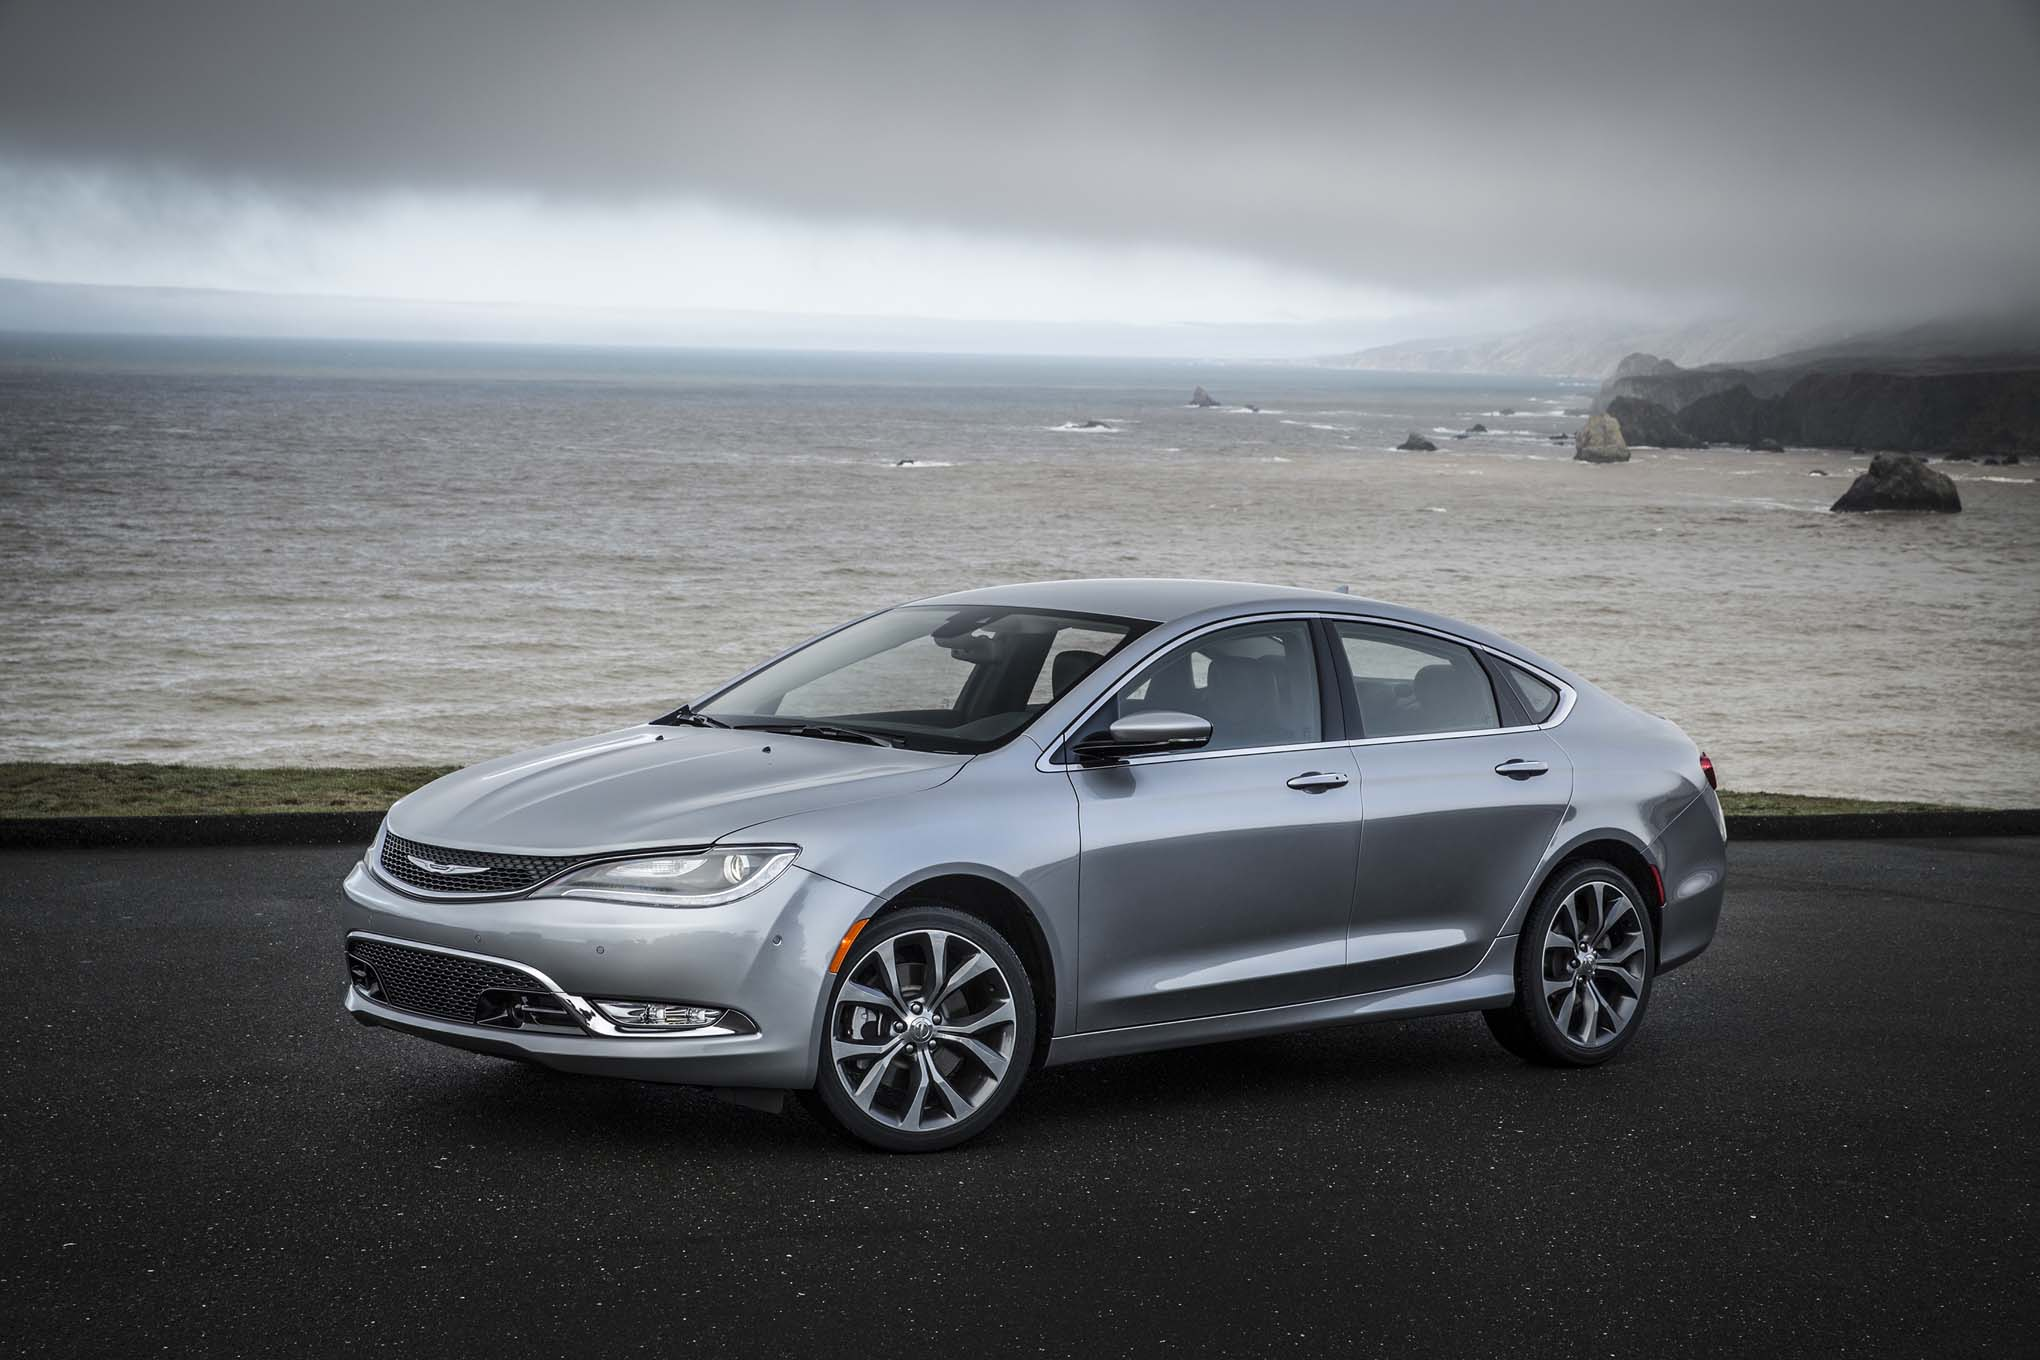 2015 Chrysler 200 Review - Automobile Magazine